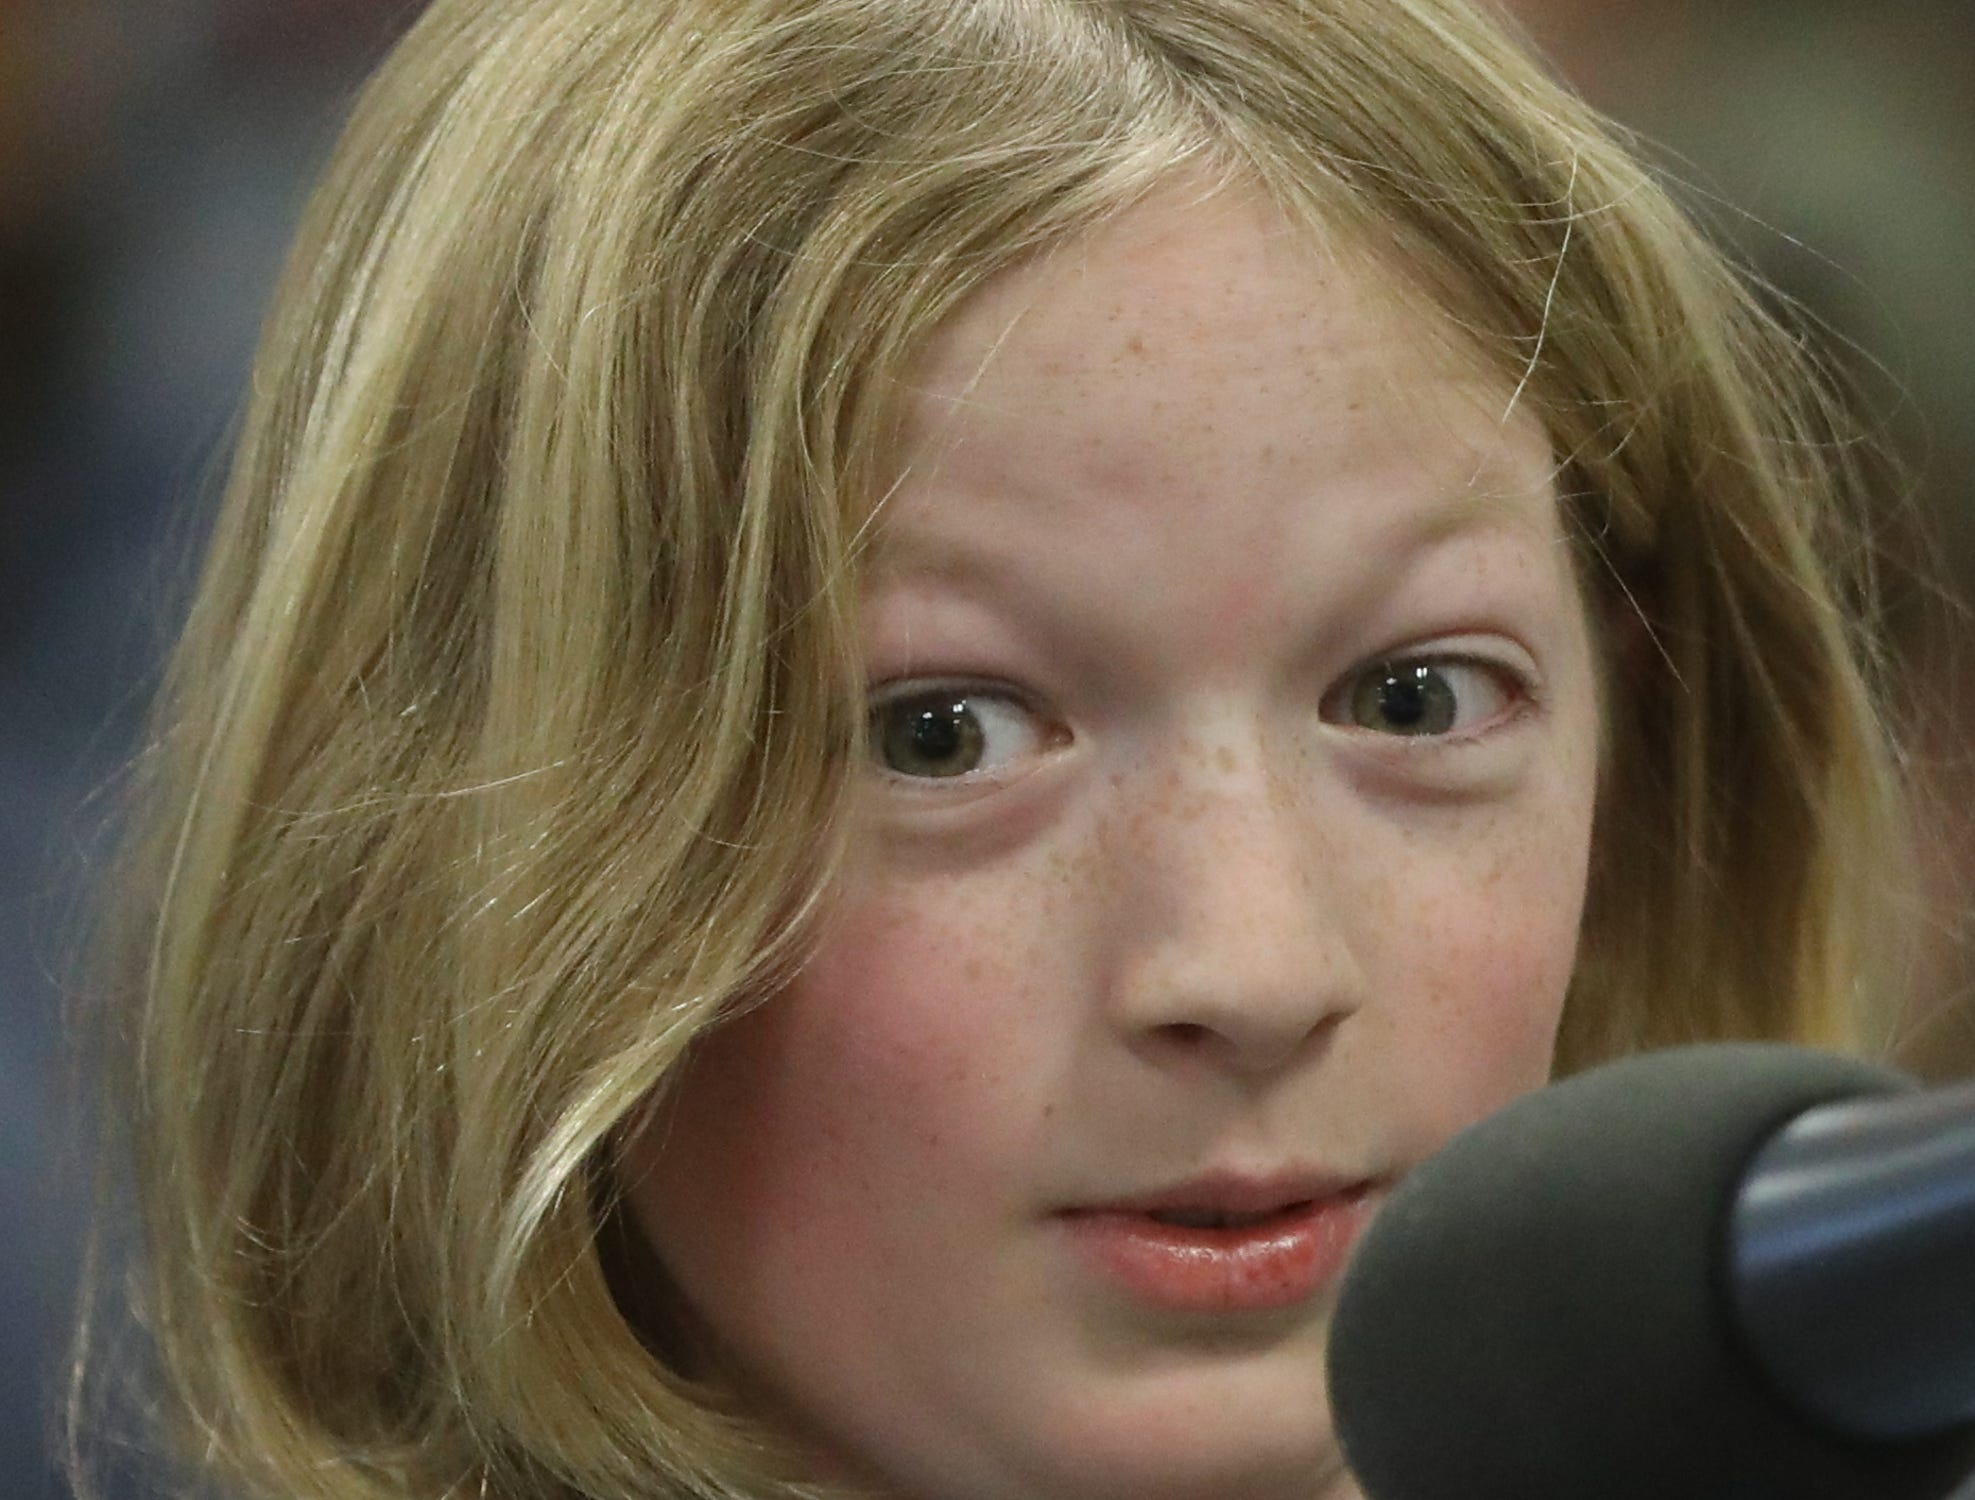 Matthew Lamerton, of Ridgewood, competes in the first round of the 2019 North Jersey Spelling Bee, in Paramus. Thursday, March 14, 2019